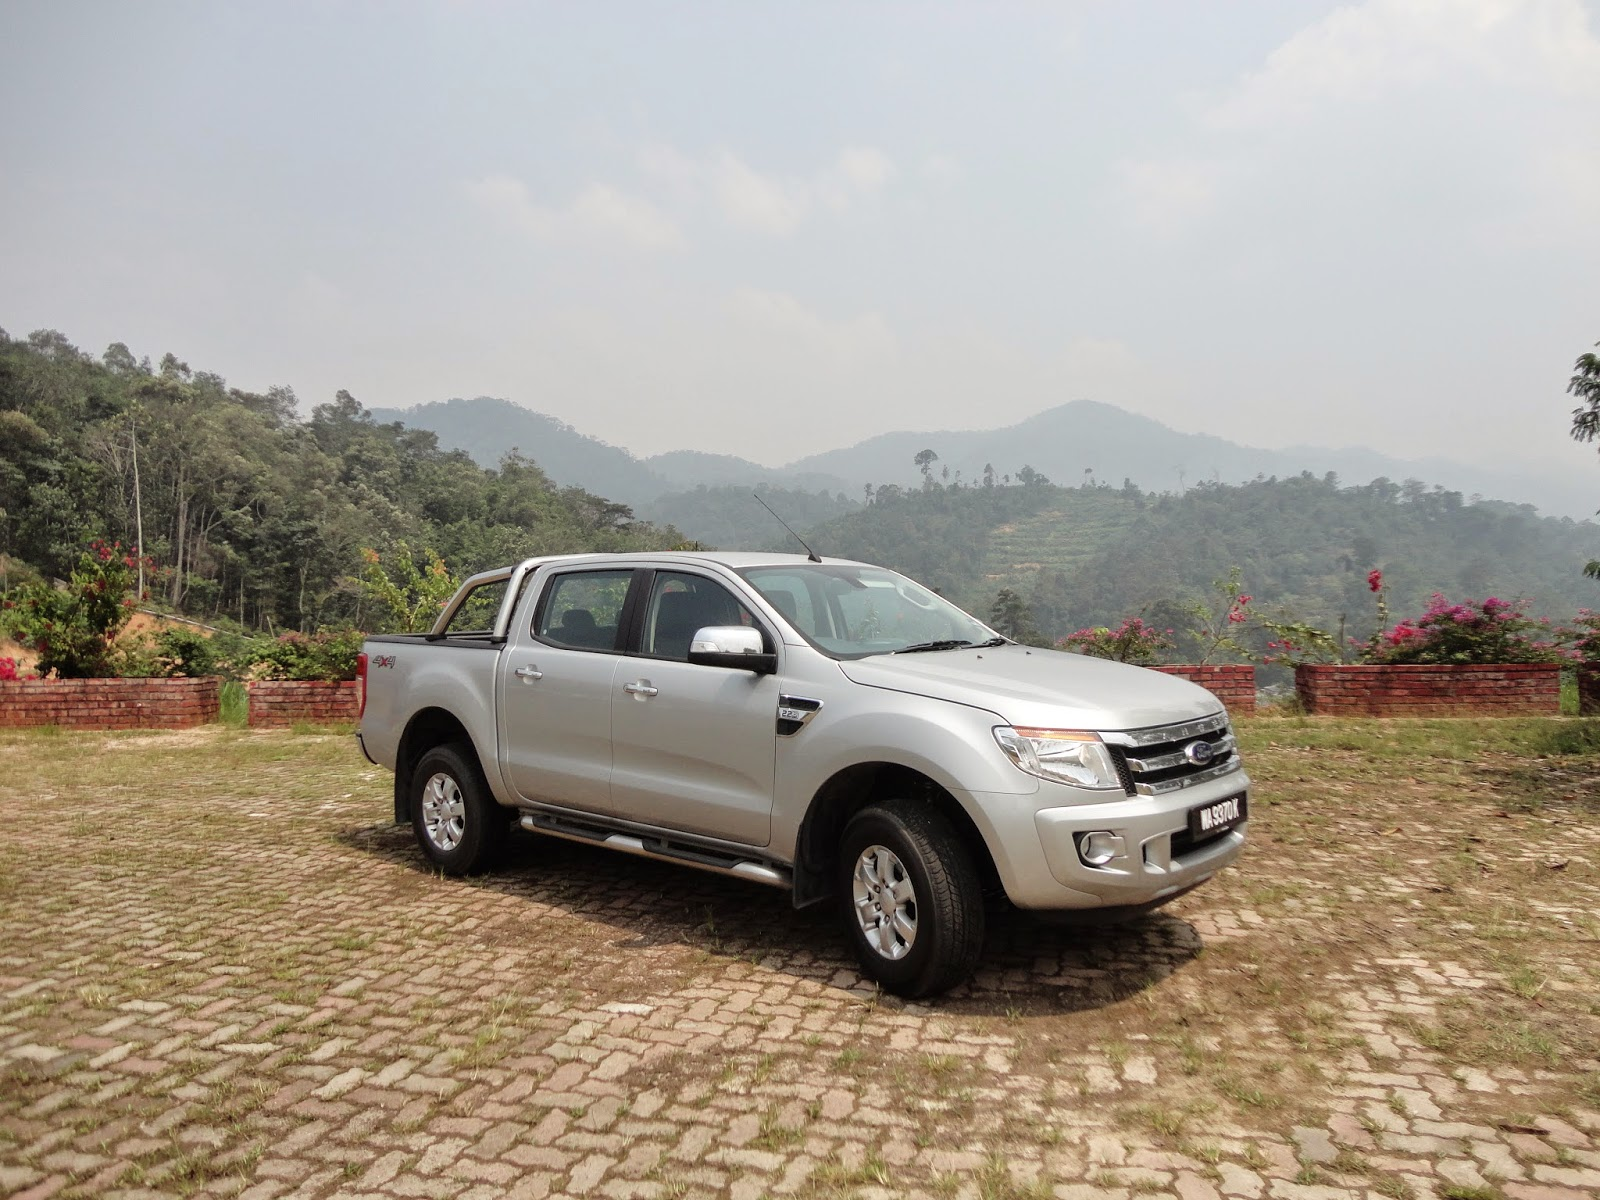 Test Drive: 2014 Ford Ranger 2.2l XLT Automatic - Traction Control and ISOFIX ..as well as the usual goodies too